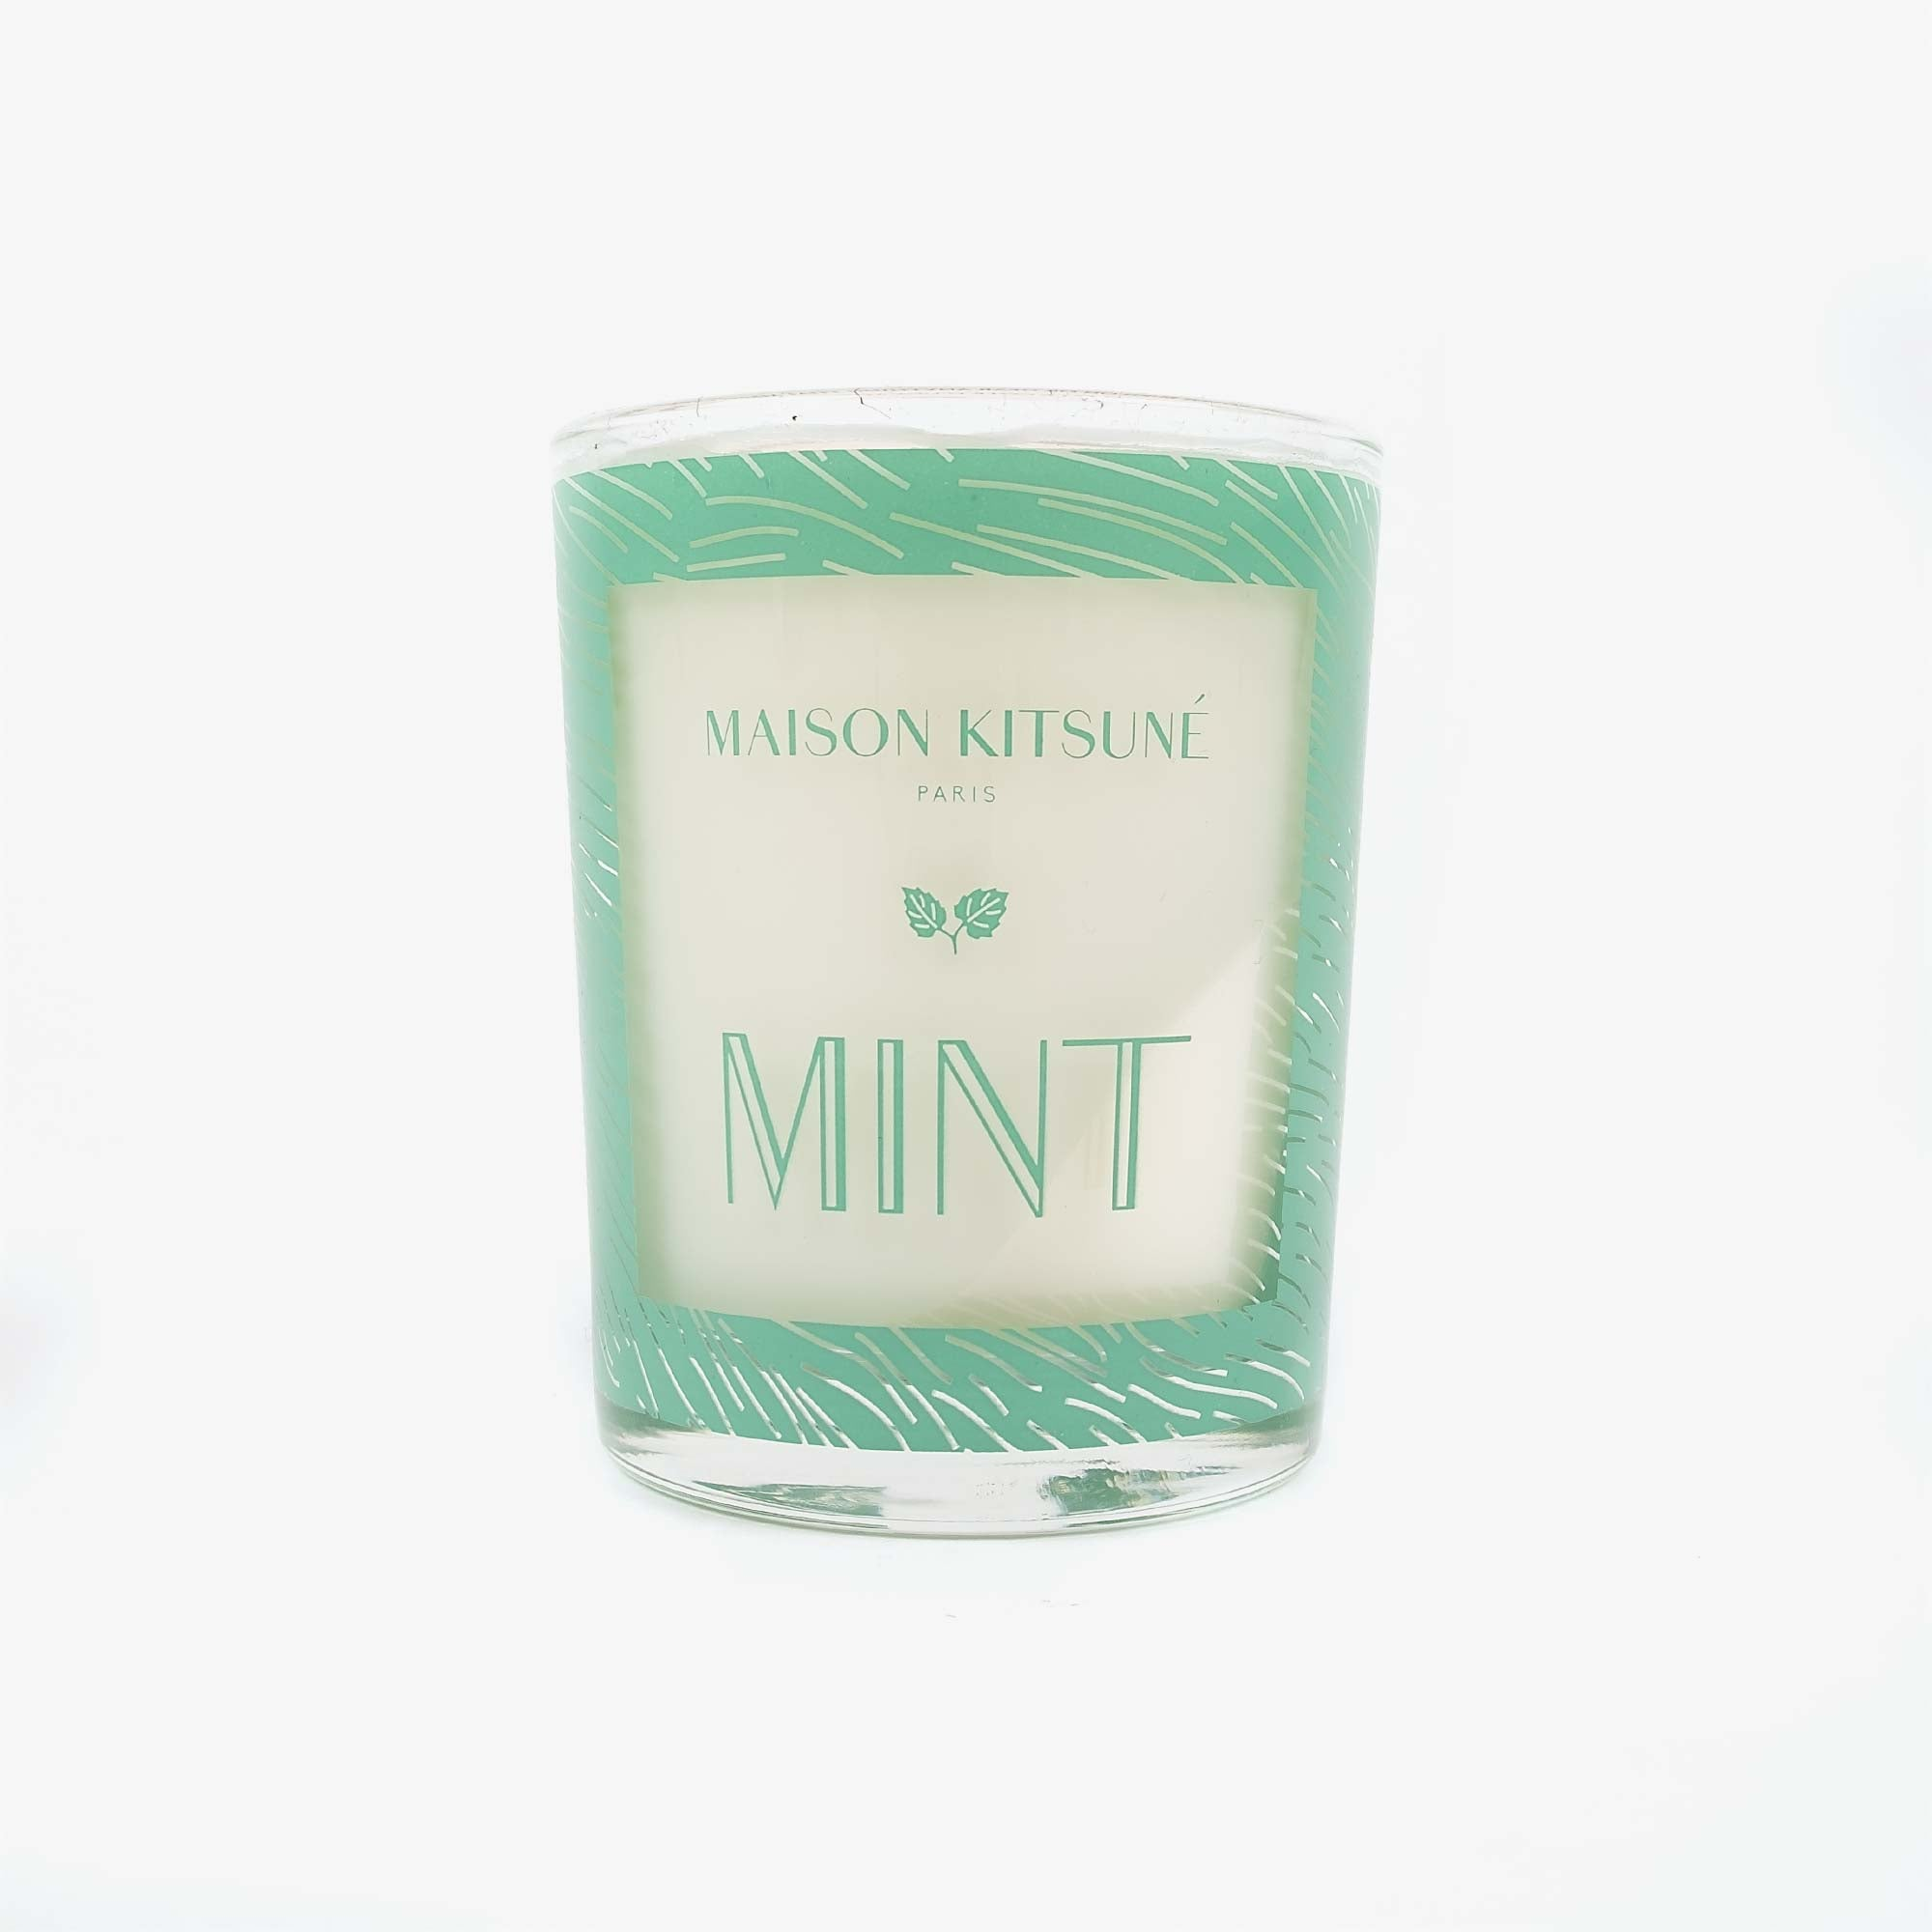 Maison Kitsune Mint Candle - Green 1